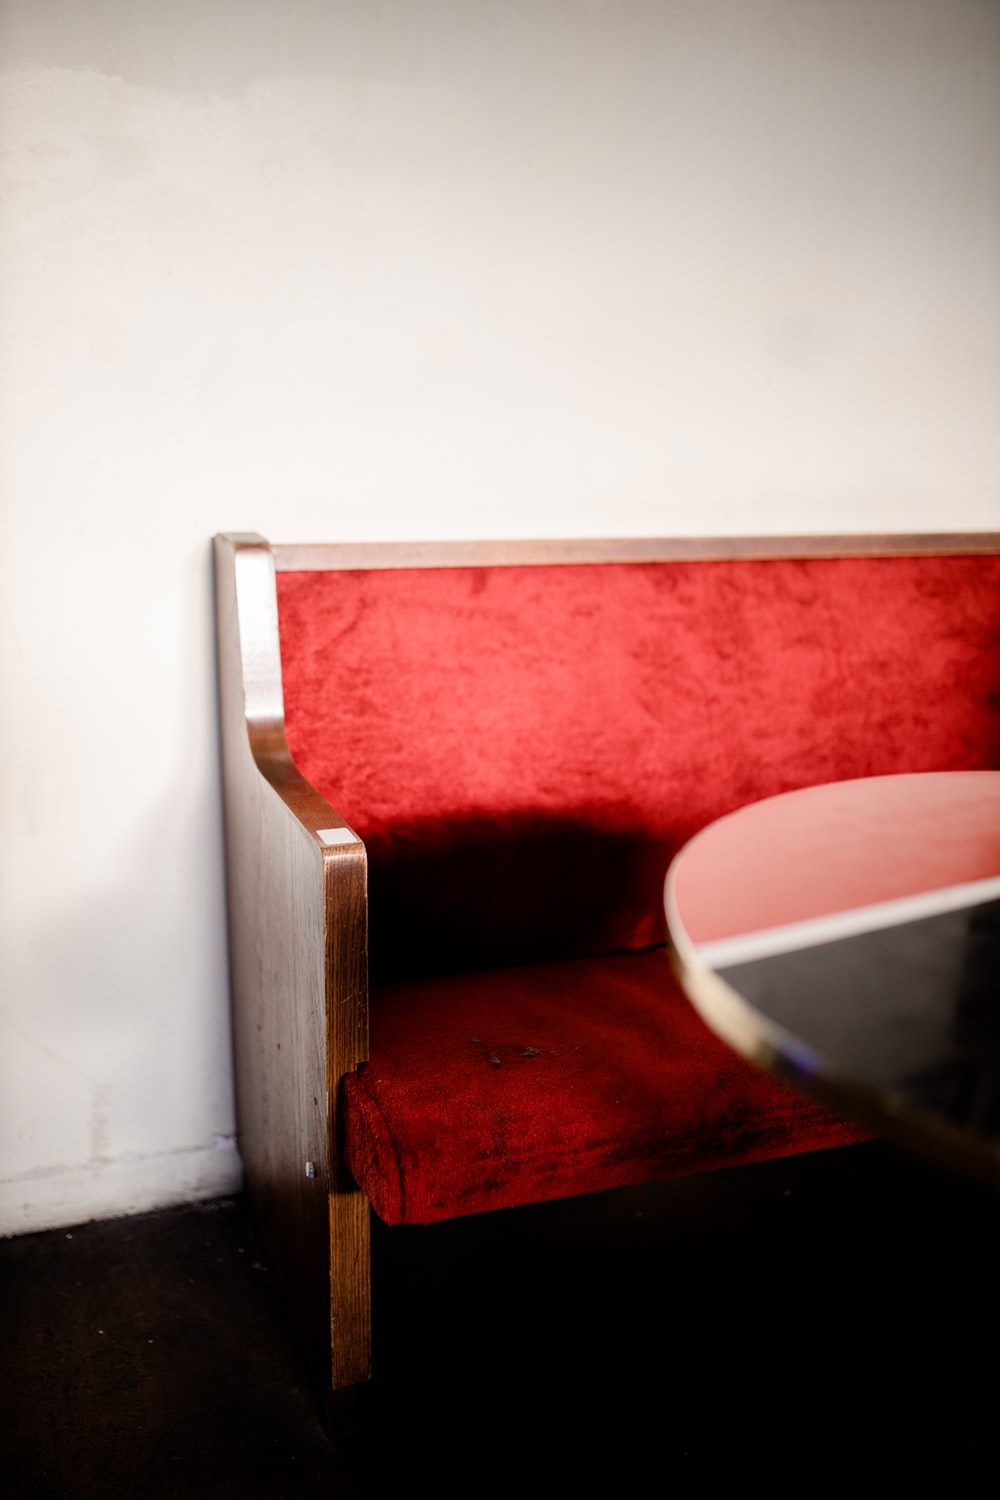 red and white wooden chair